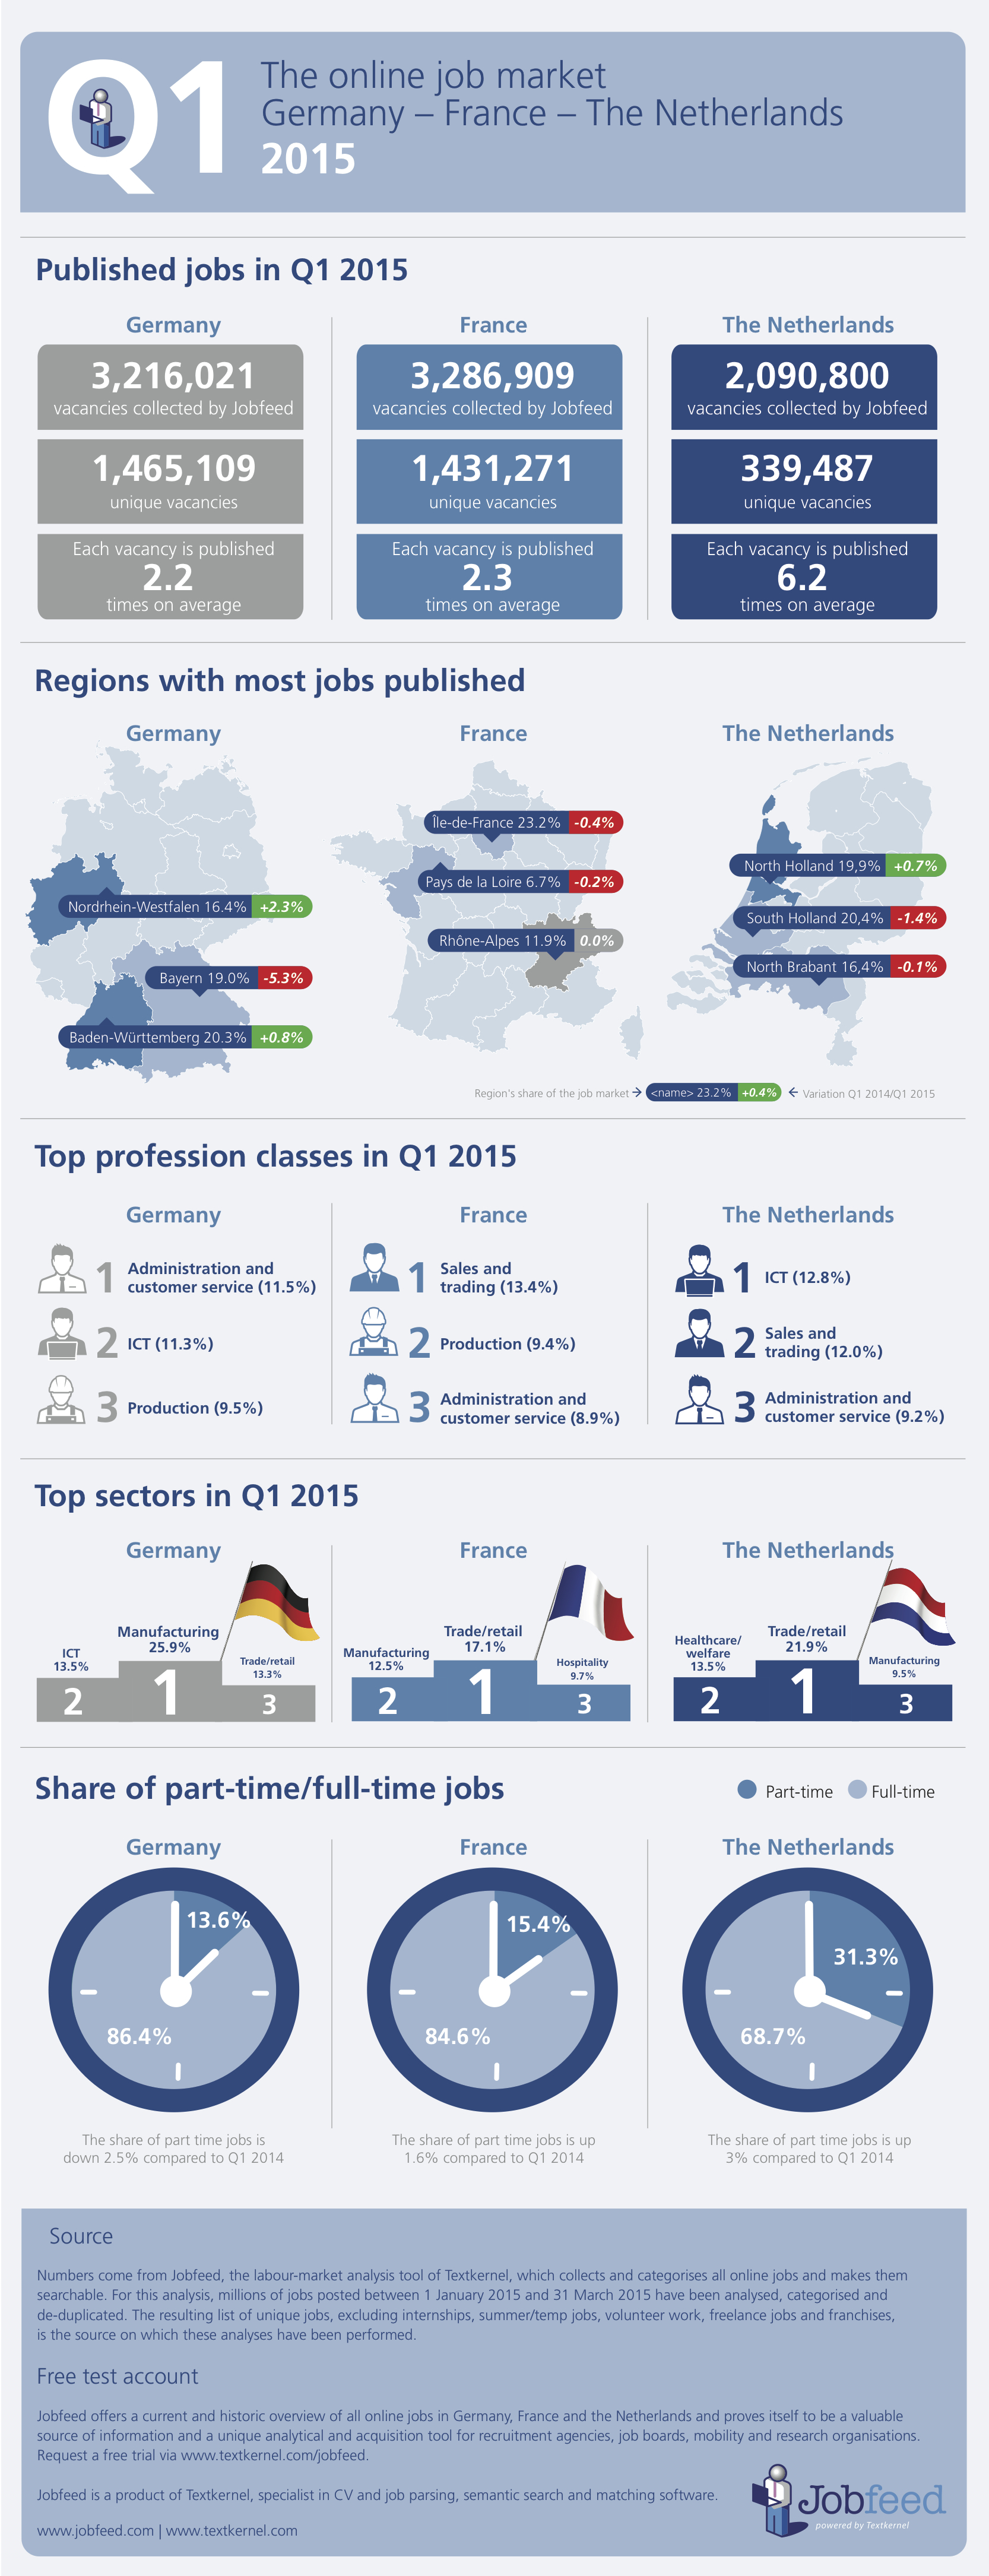 The-online-job-market-in-Q1-2015-Germany-France-the-Netherlands1